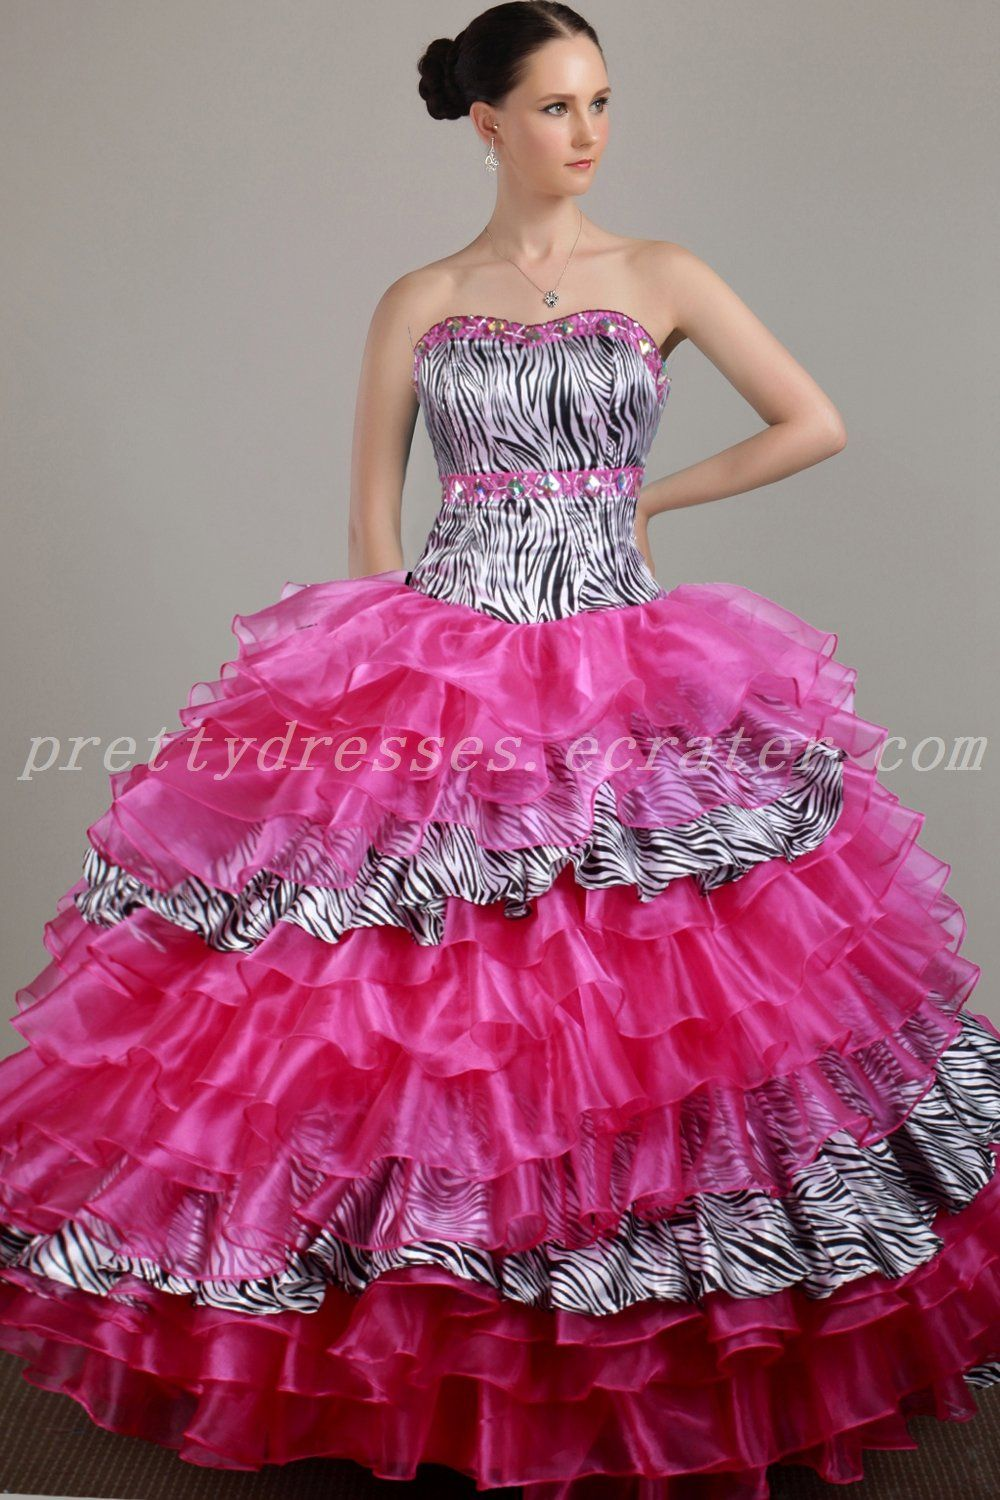 Pin by hattiecustomized on Quinceanera Dresses i love | Pinterest ...